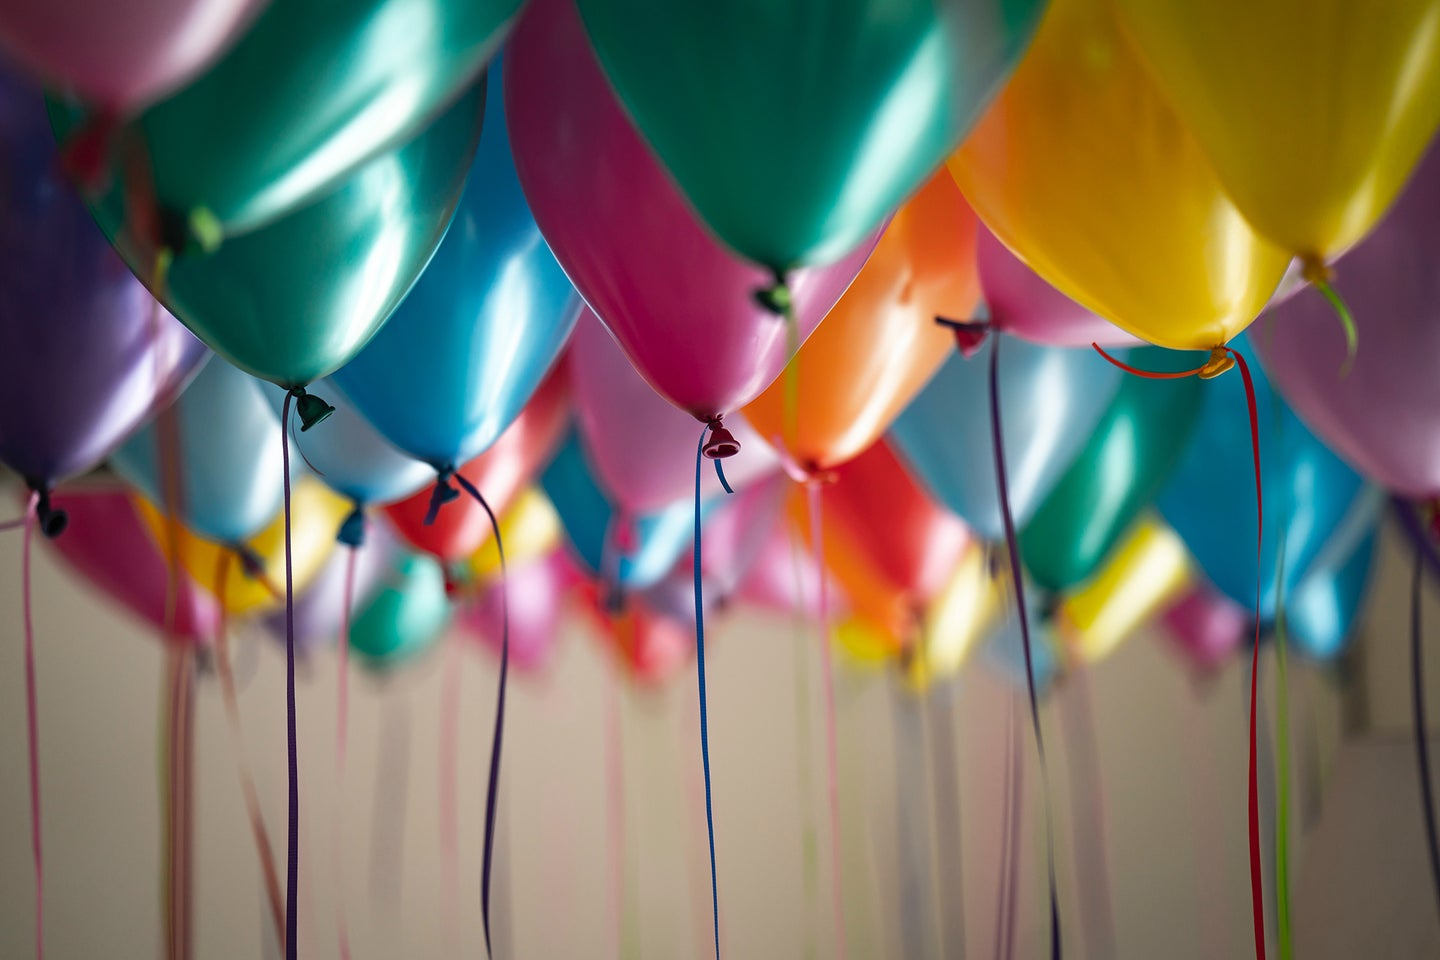 multiple colors of balloons with string hanging